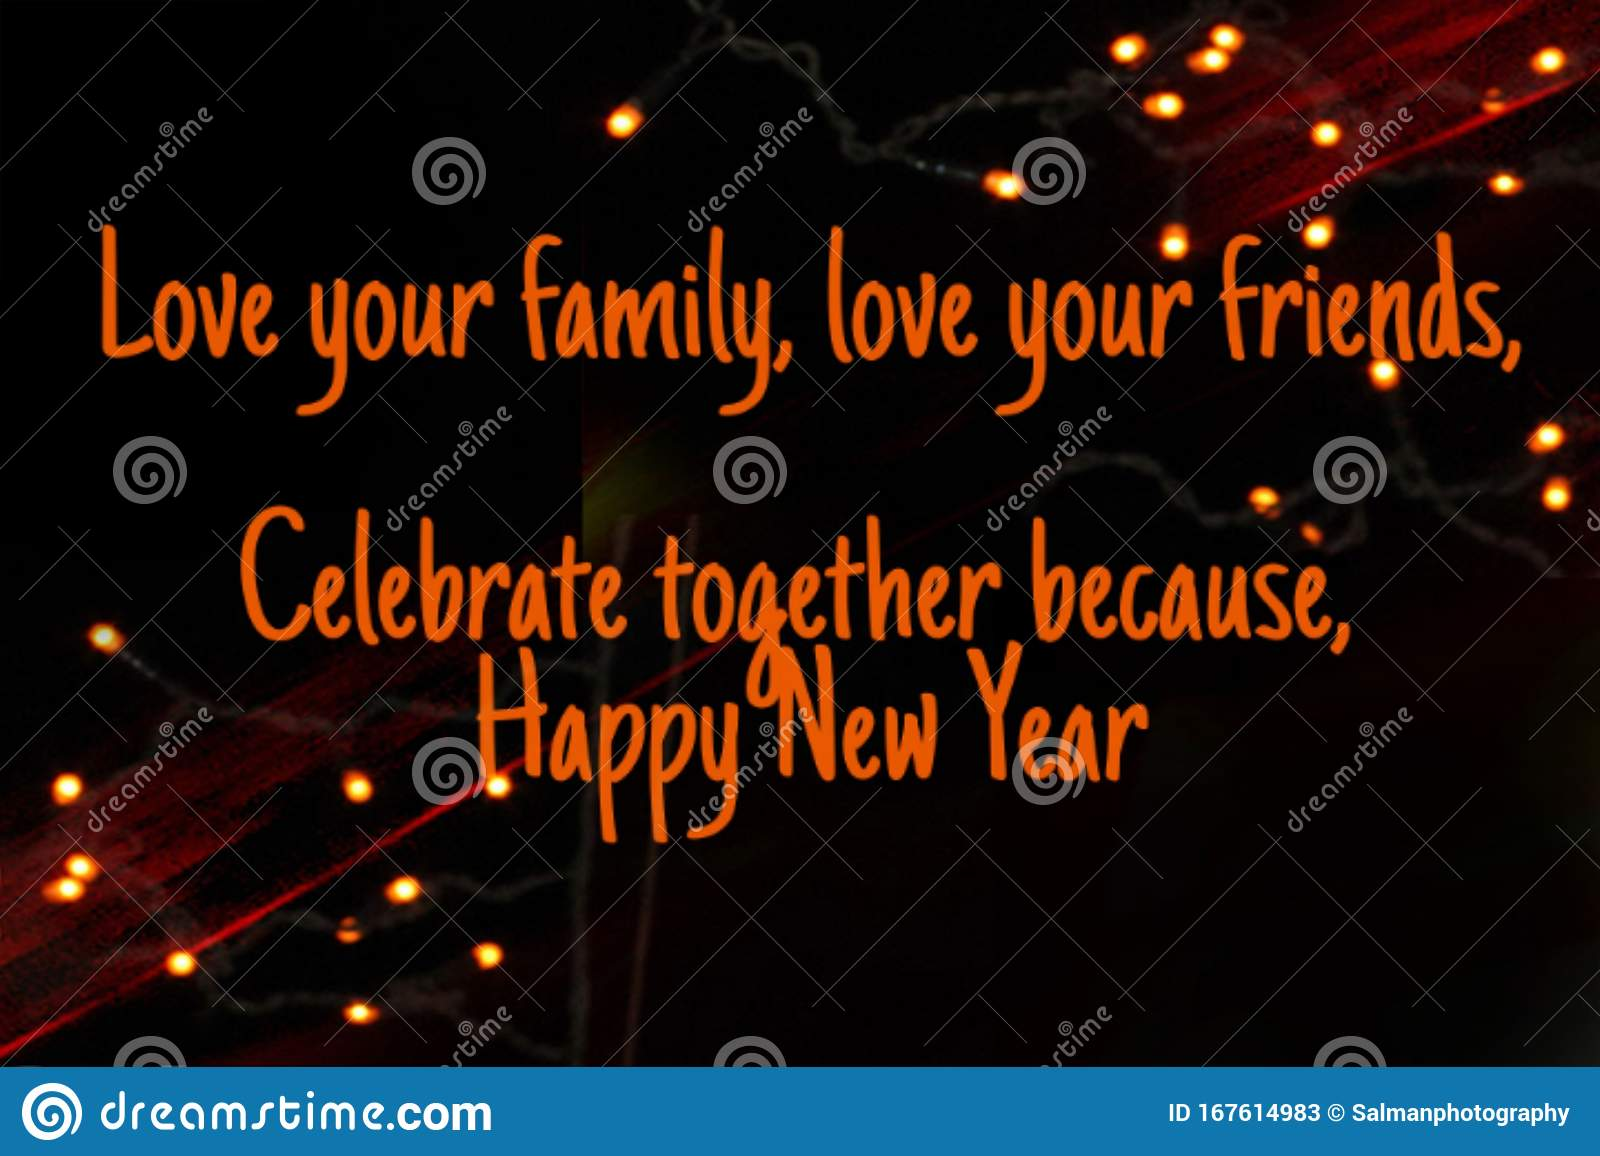 inspirational quote for happy new year 2020 stock image image of quotes year 167614983 https www dreamstime com inspirational quote happy new year inspirational quote happy new year quote year image167614983